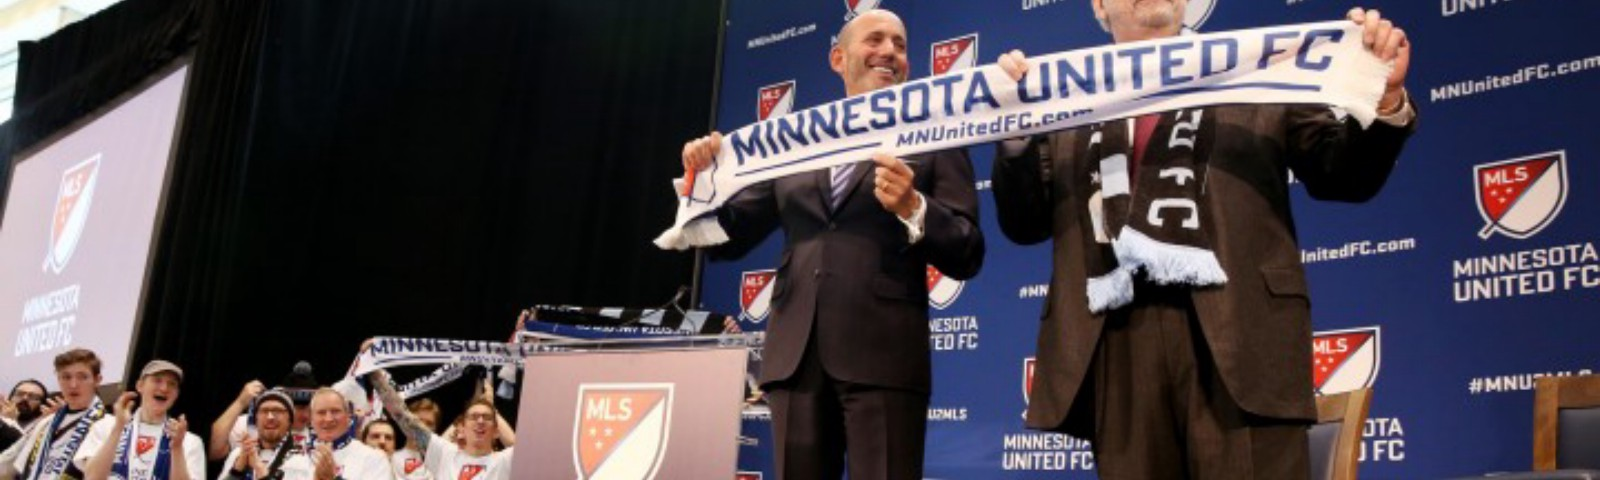 Major League Soccer Commissioner Don Garber, left, and Dr. Bill McGuire announce that Minnesota United FC will move to MLS at Target Field in Minneapolis on Wednesday, March 25, 2015. ] LEILA NAVIDI leila.navidi@startribune.com /